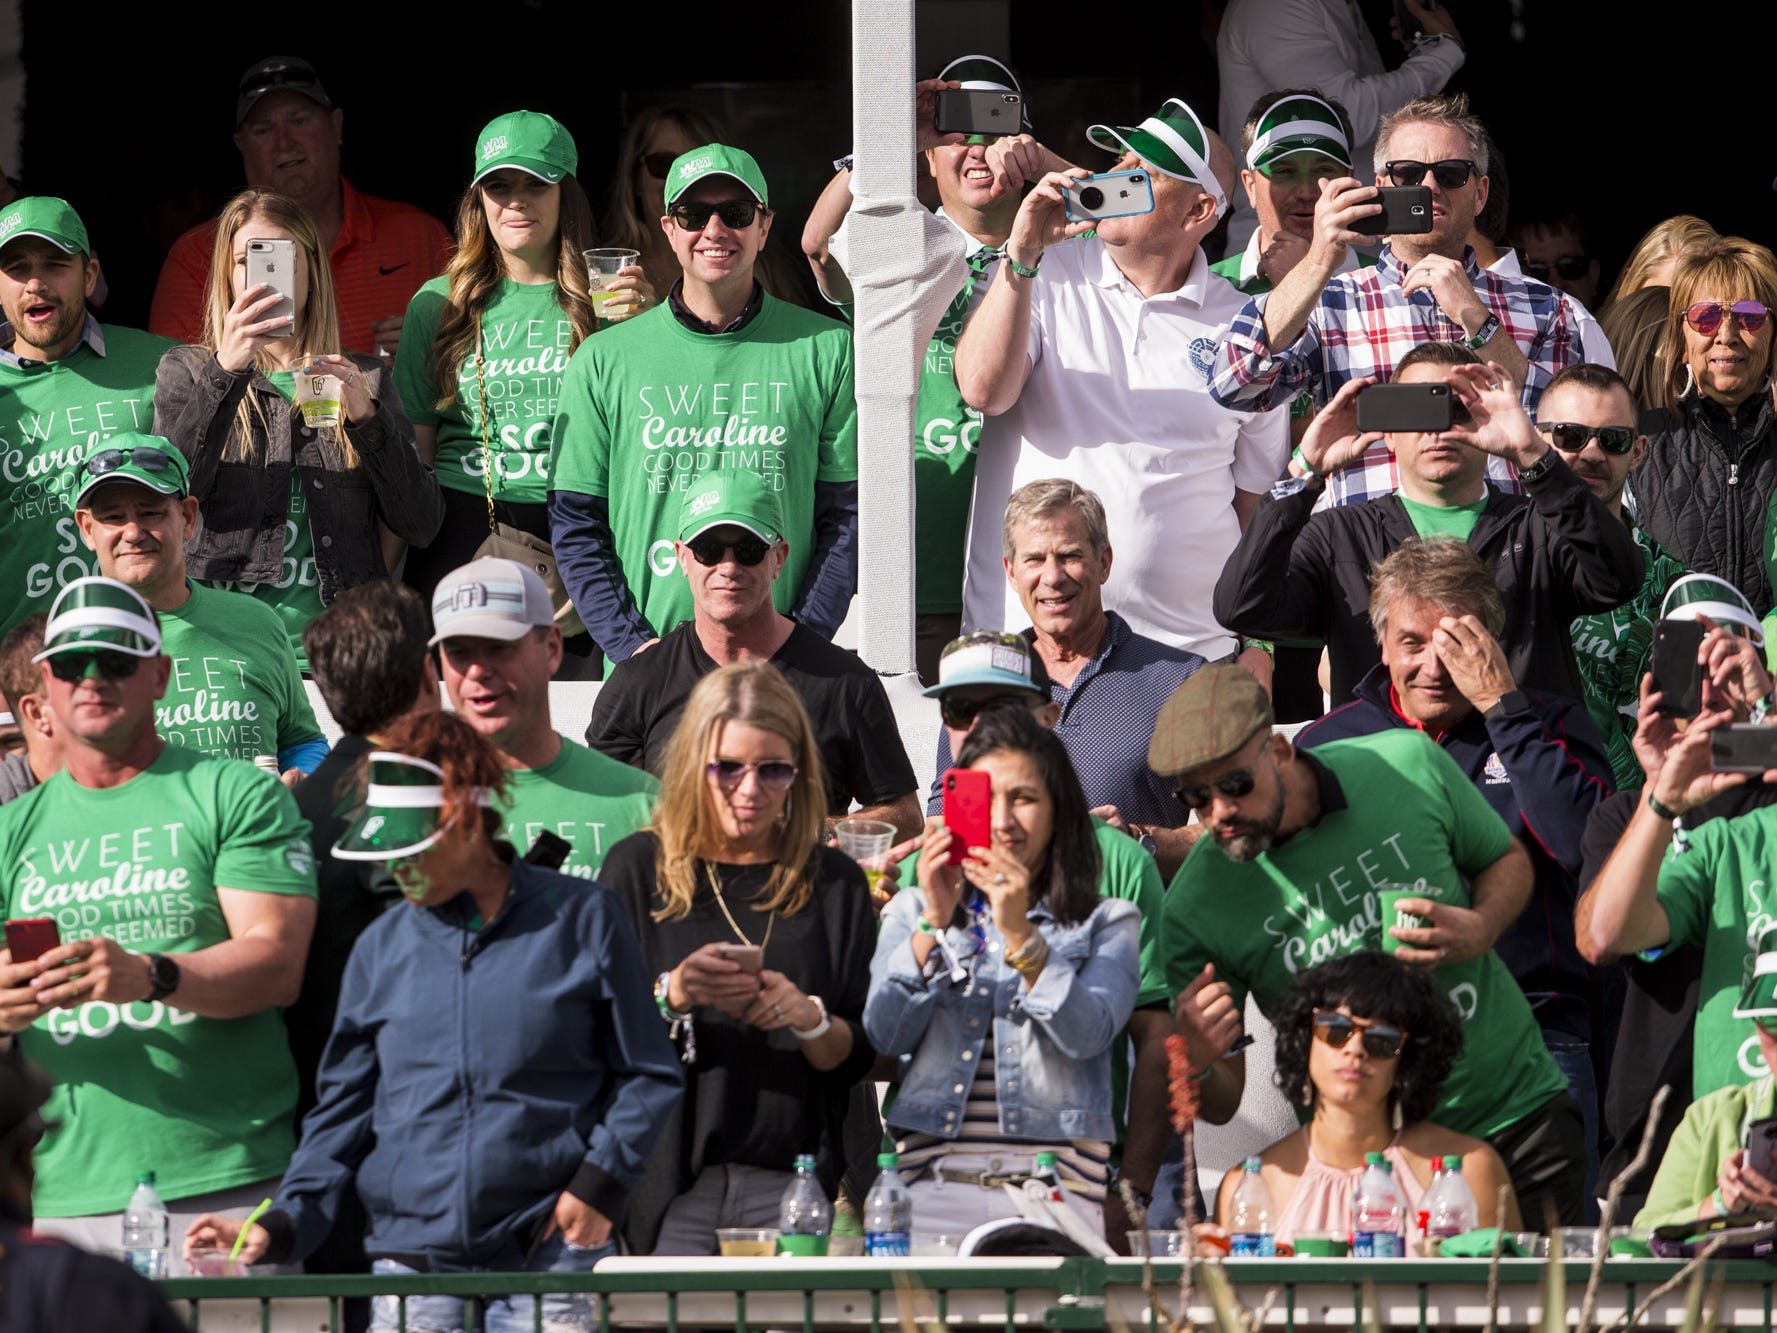 Fans watch on the 16th hole during Round 3 of the Waste Management Phoenix Open on Saturday, Feb. 2, 2019, at TPC Scottsdale in Scottsdale, Ariz.